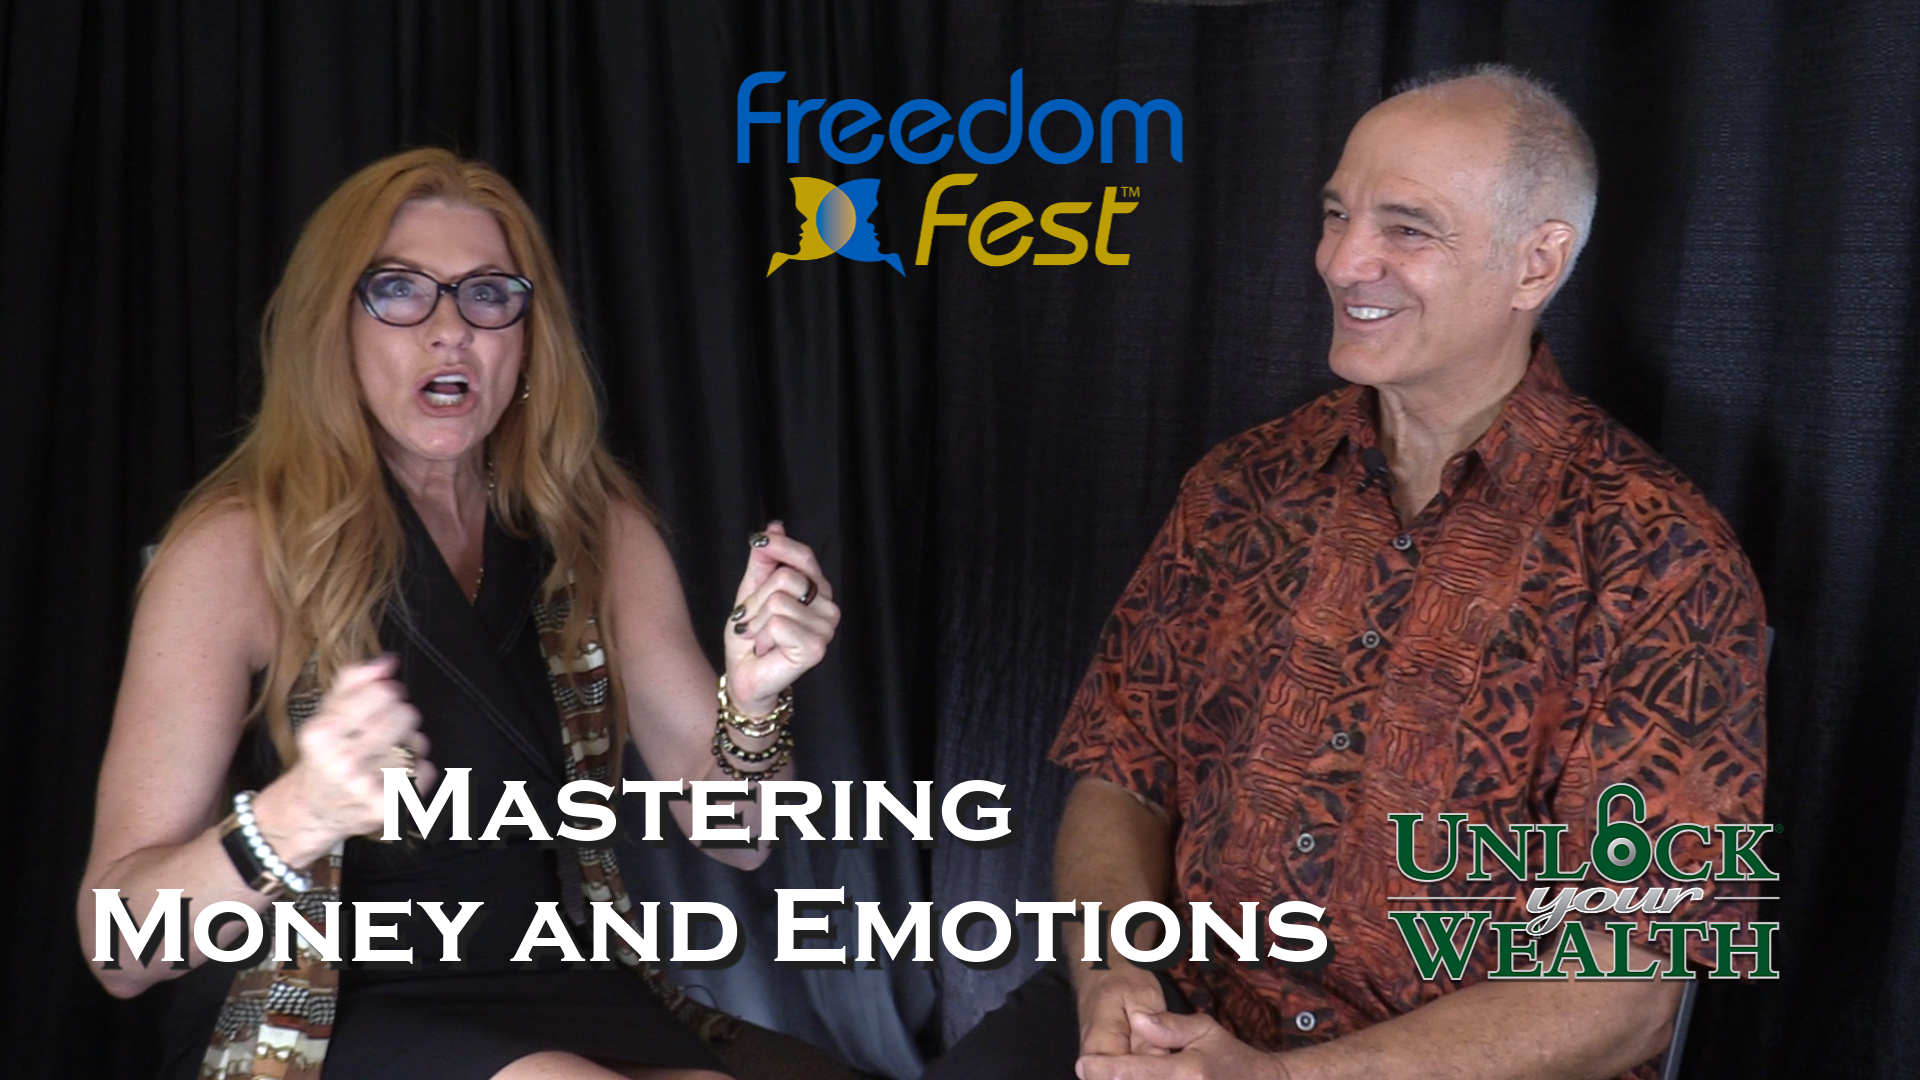 Mastering Money and Emotions at FreedomFest Featuring Dr. Joel Wade show art